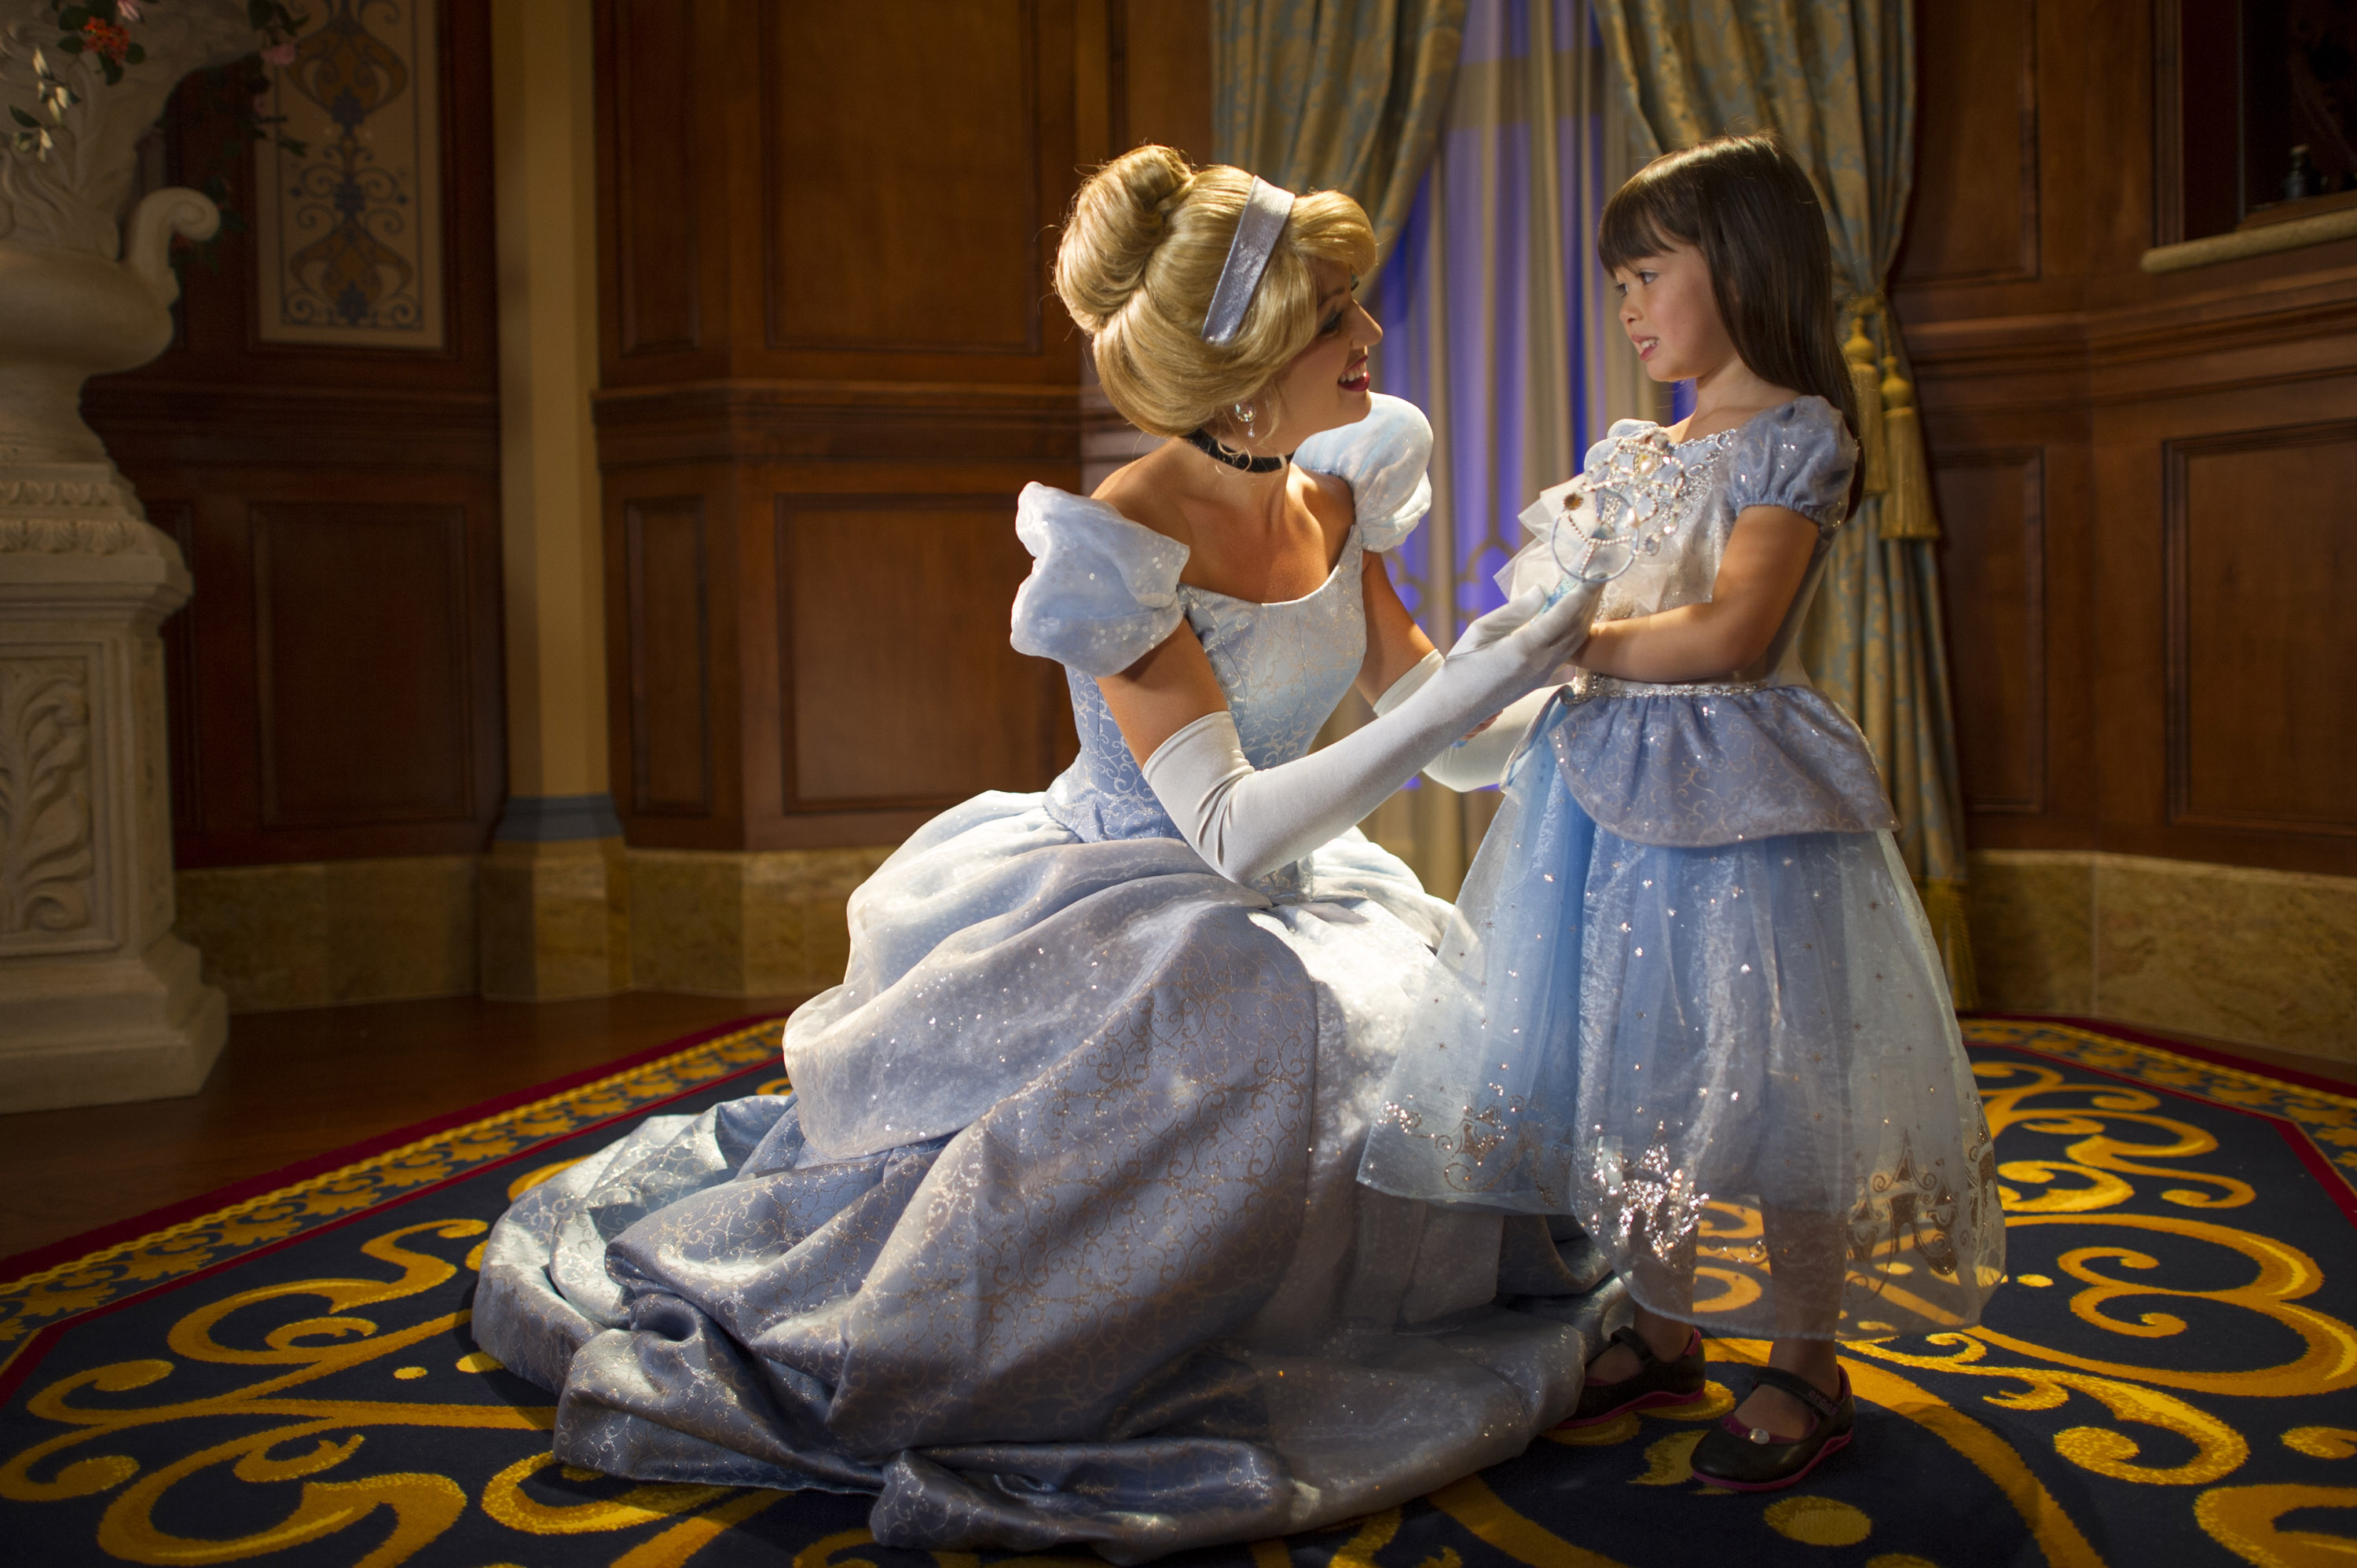 Top 7 must dos for cinderella fans at the walt disney world resort top 7 must dos for cinderella fans at the walt disney world resort disney every day m4hsunfo